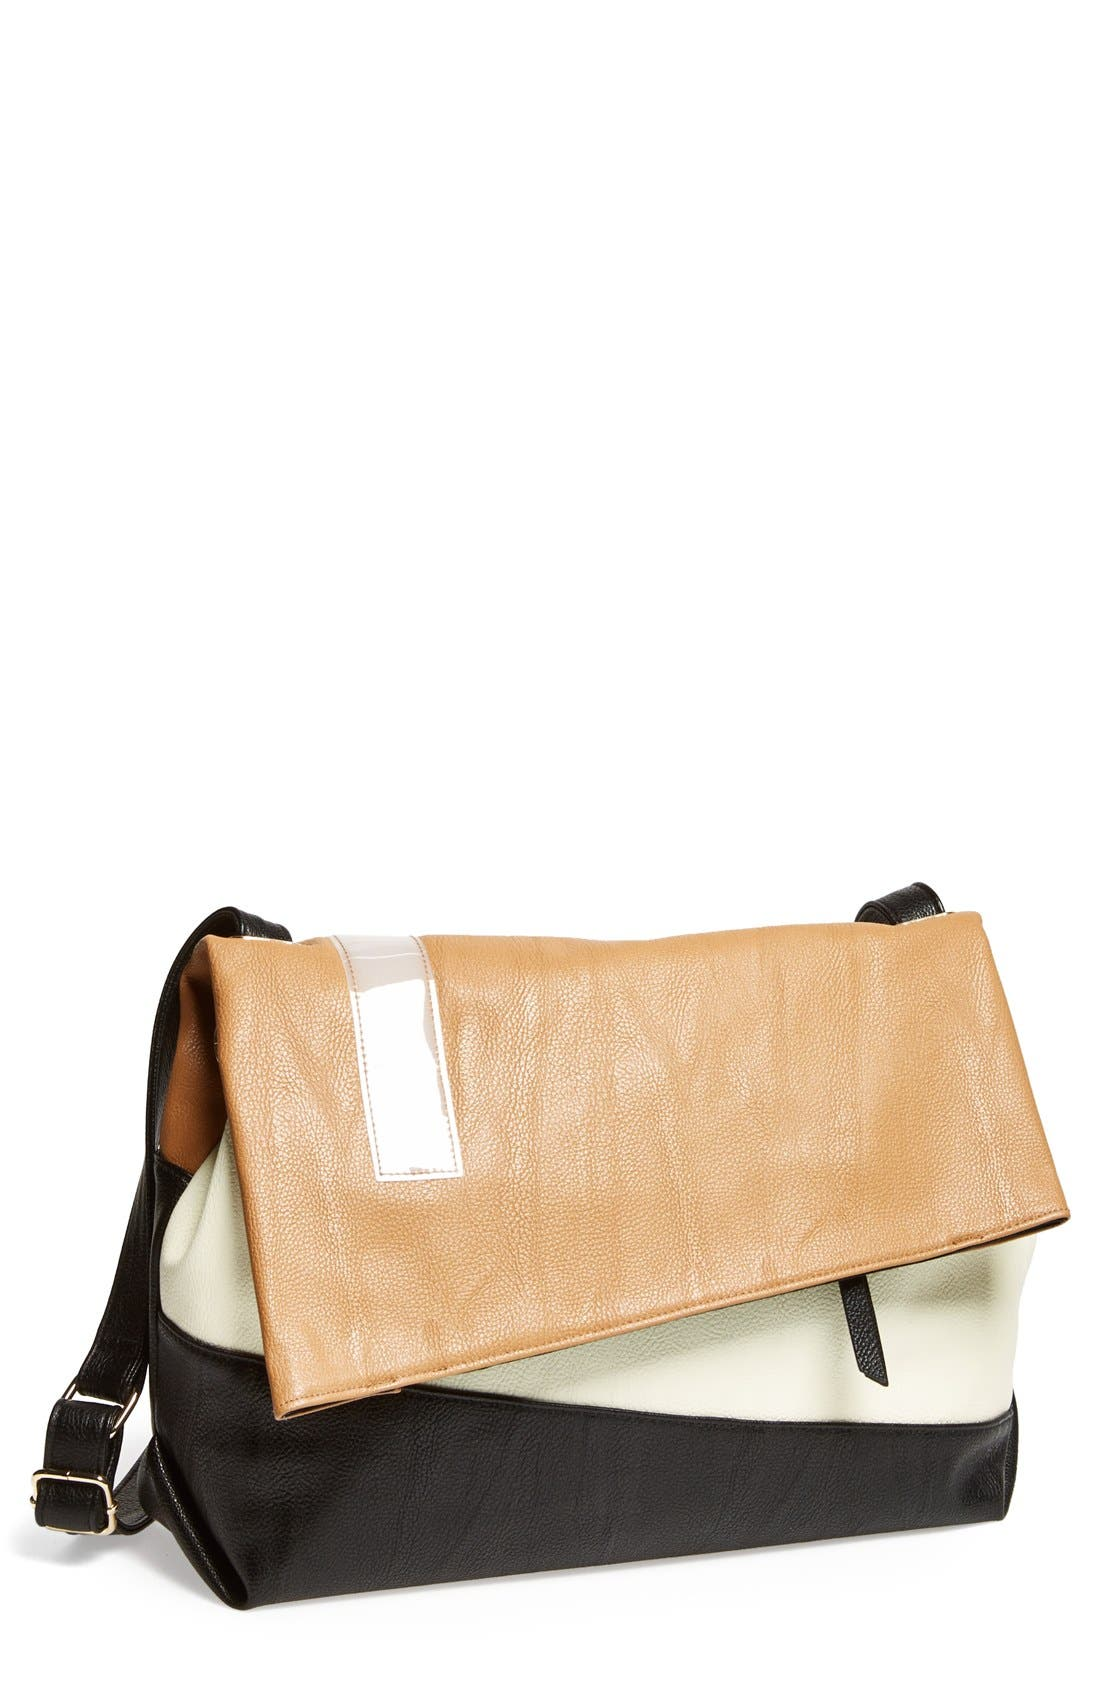 Alternate Image 1 Selected - POVERTY FLATS by rian 'Large' Asymmetrical Faux Leather Crossbody Bag